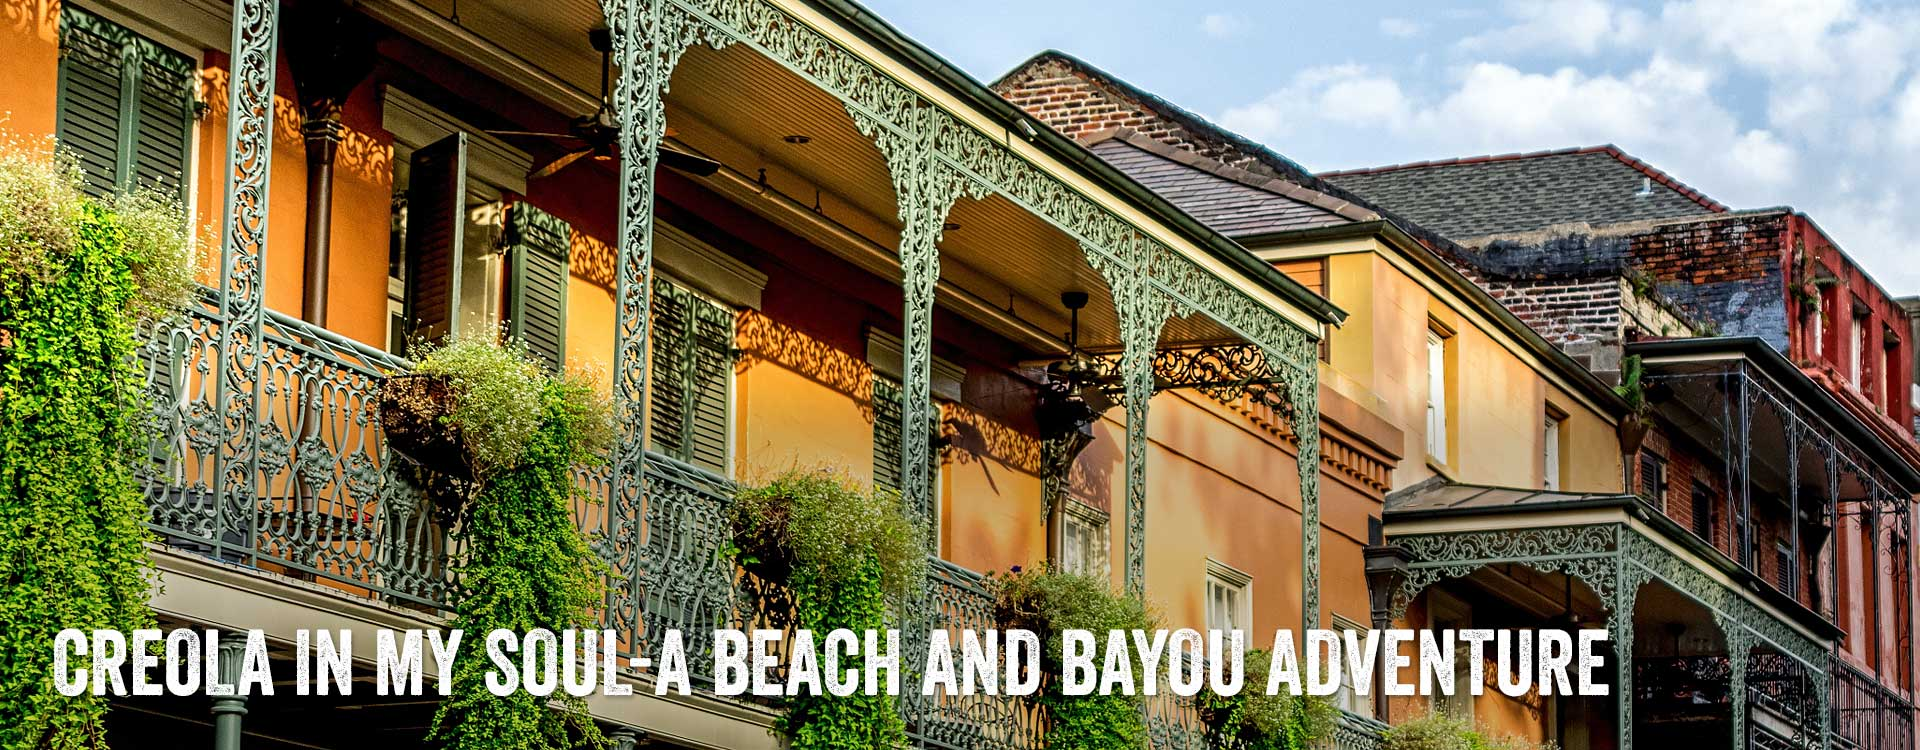 Creola in My Soul-a Beach and Bayou Adventure